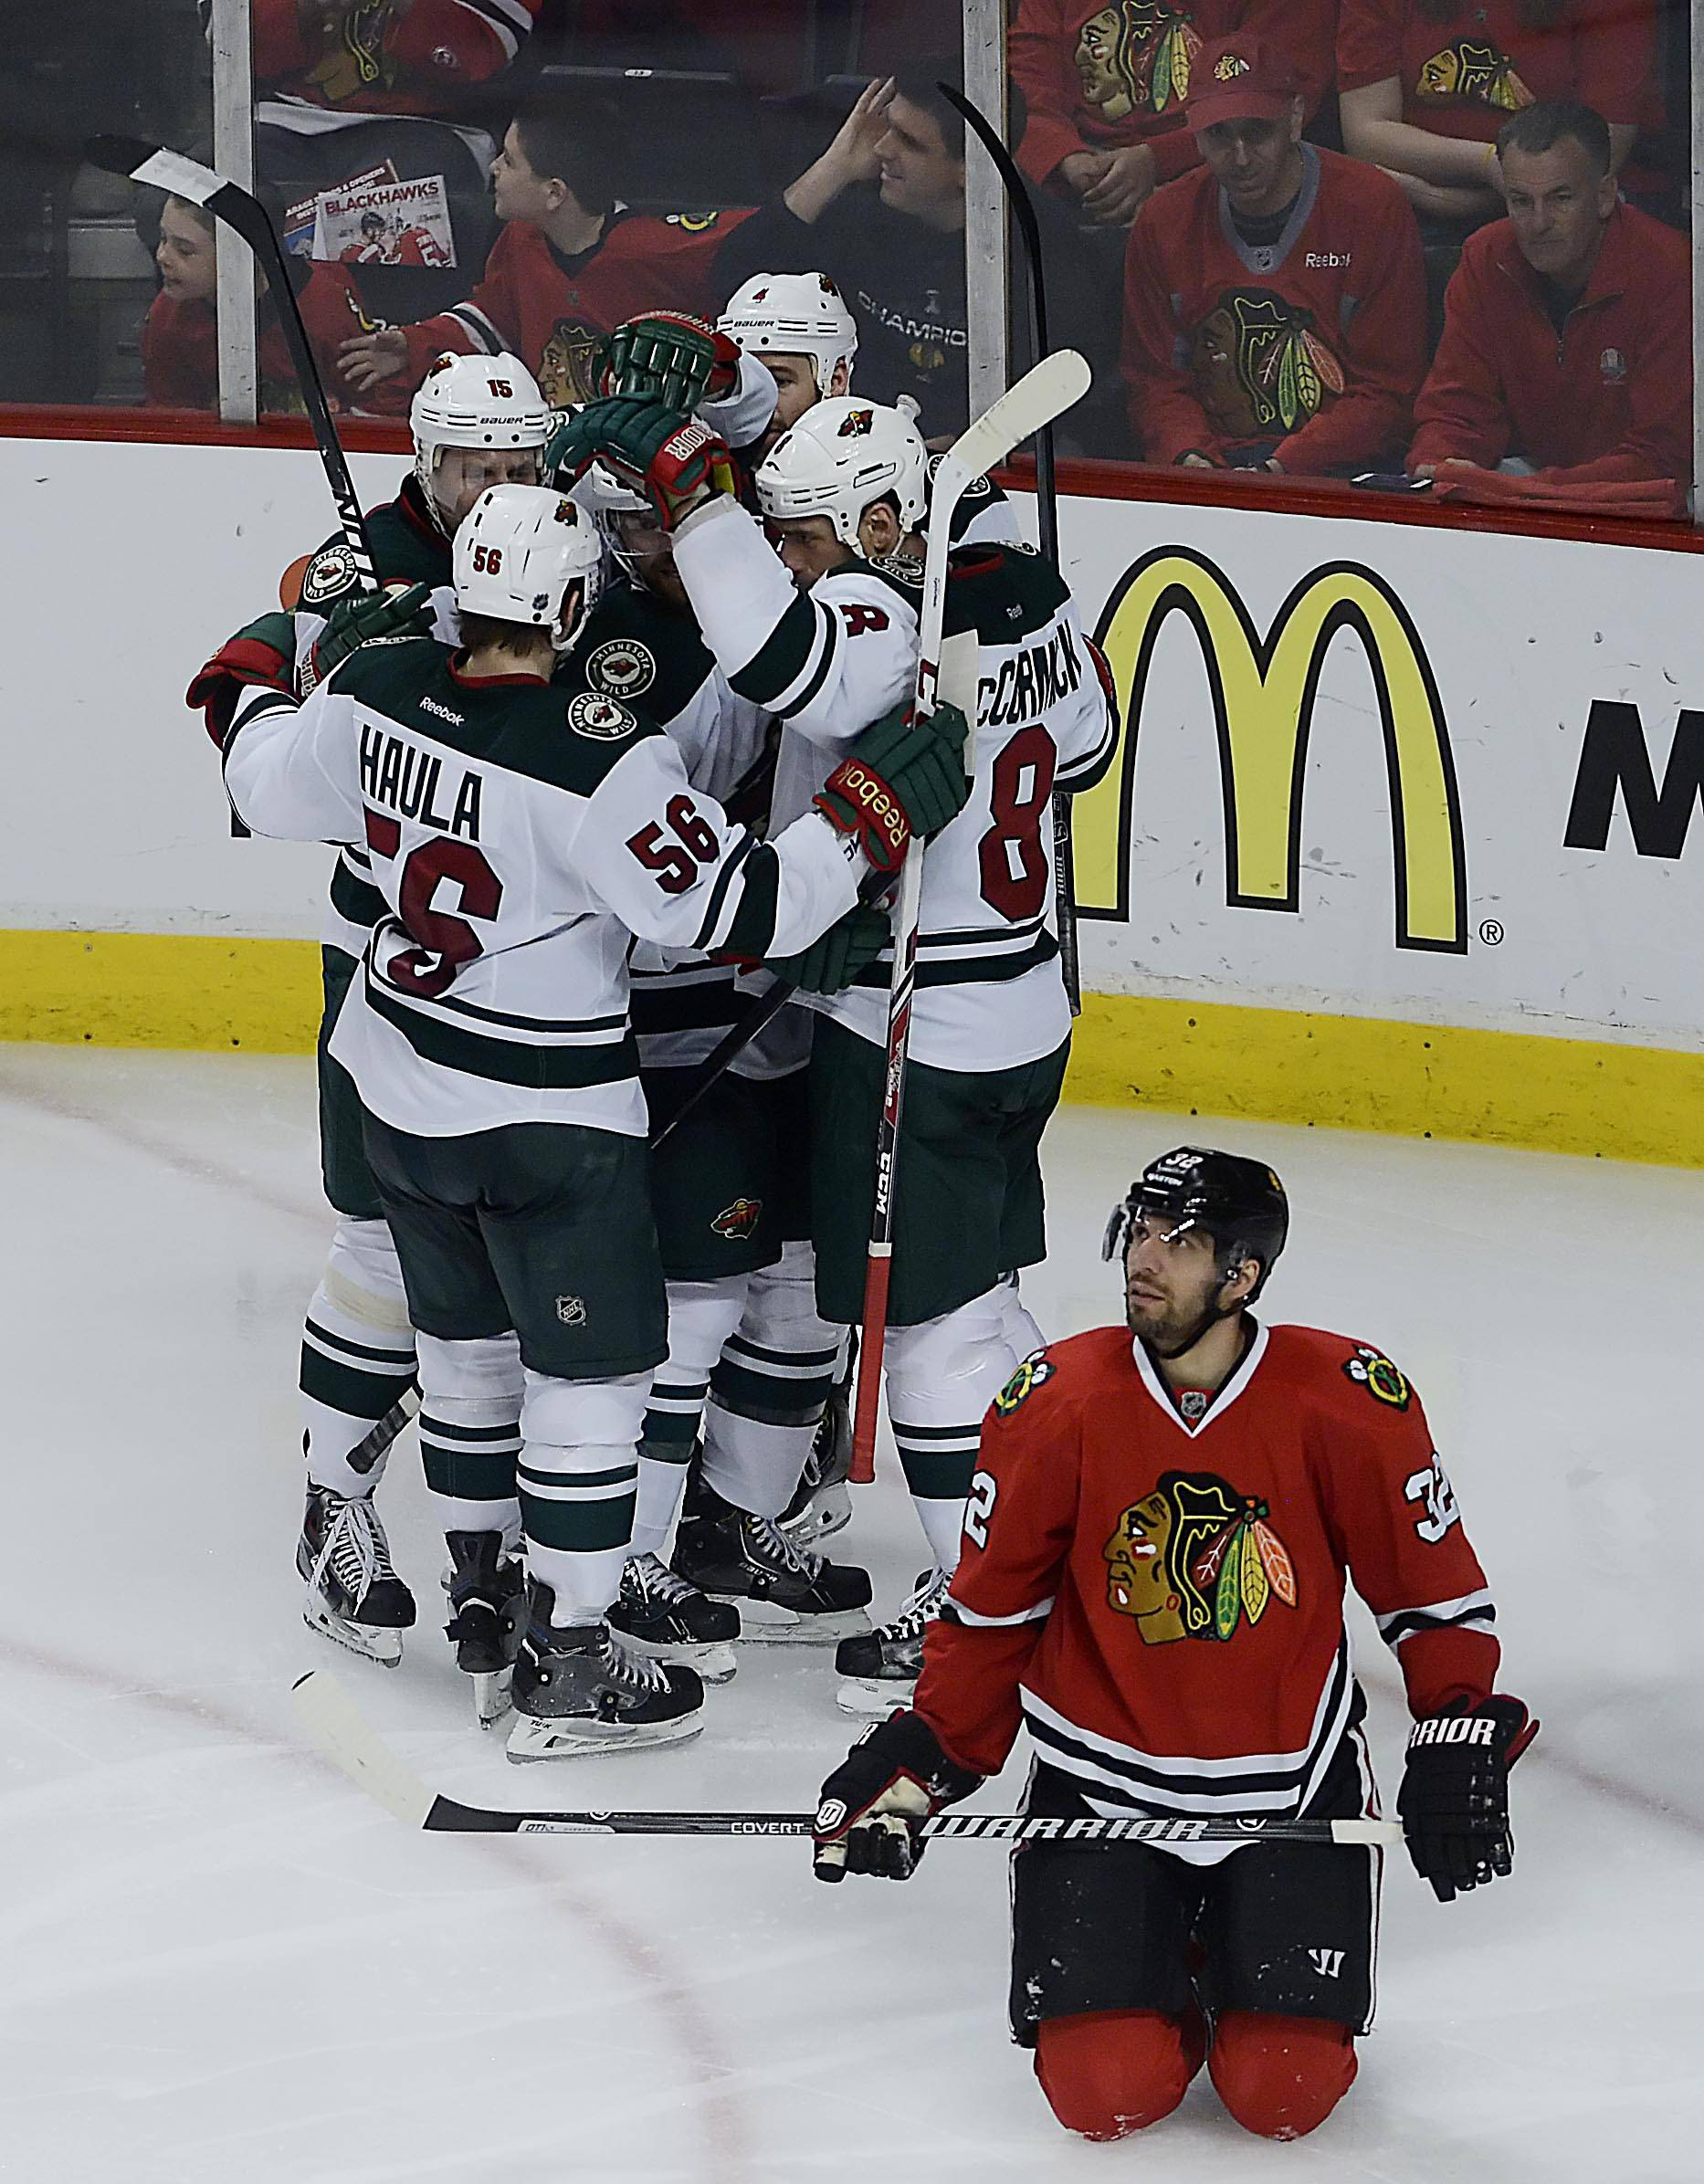 Chicago Blackhawks defenseman Michal Rozsival kneels on the ice after Minnesota Wild center Cody McCormick scored in the third period. Chicago won 4-1.